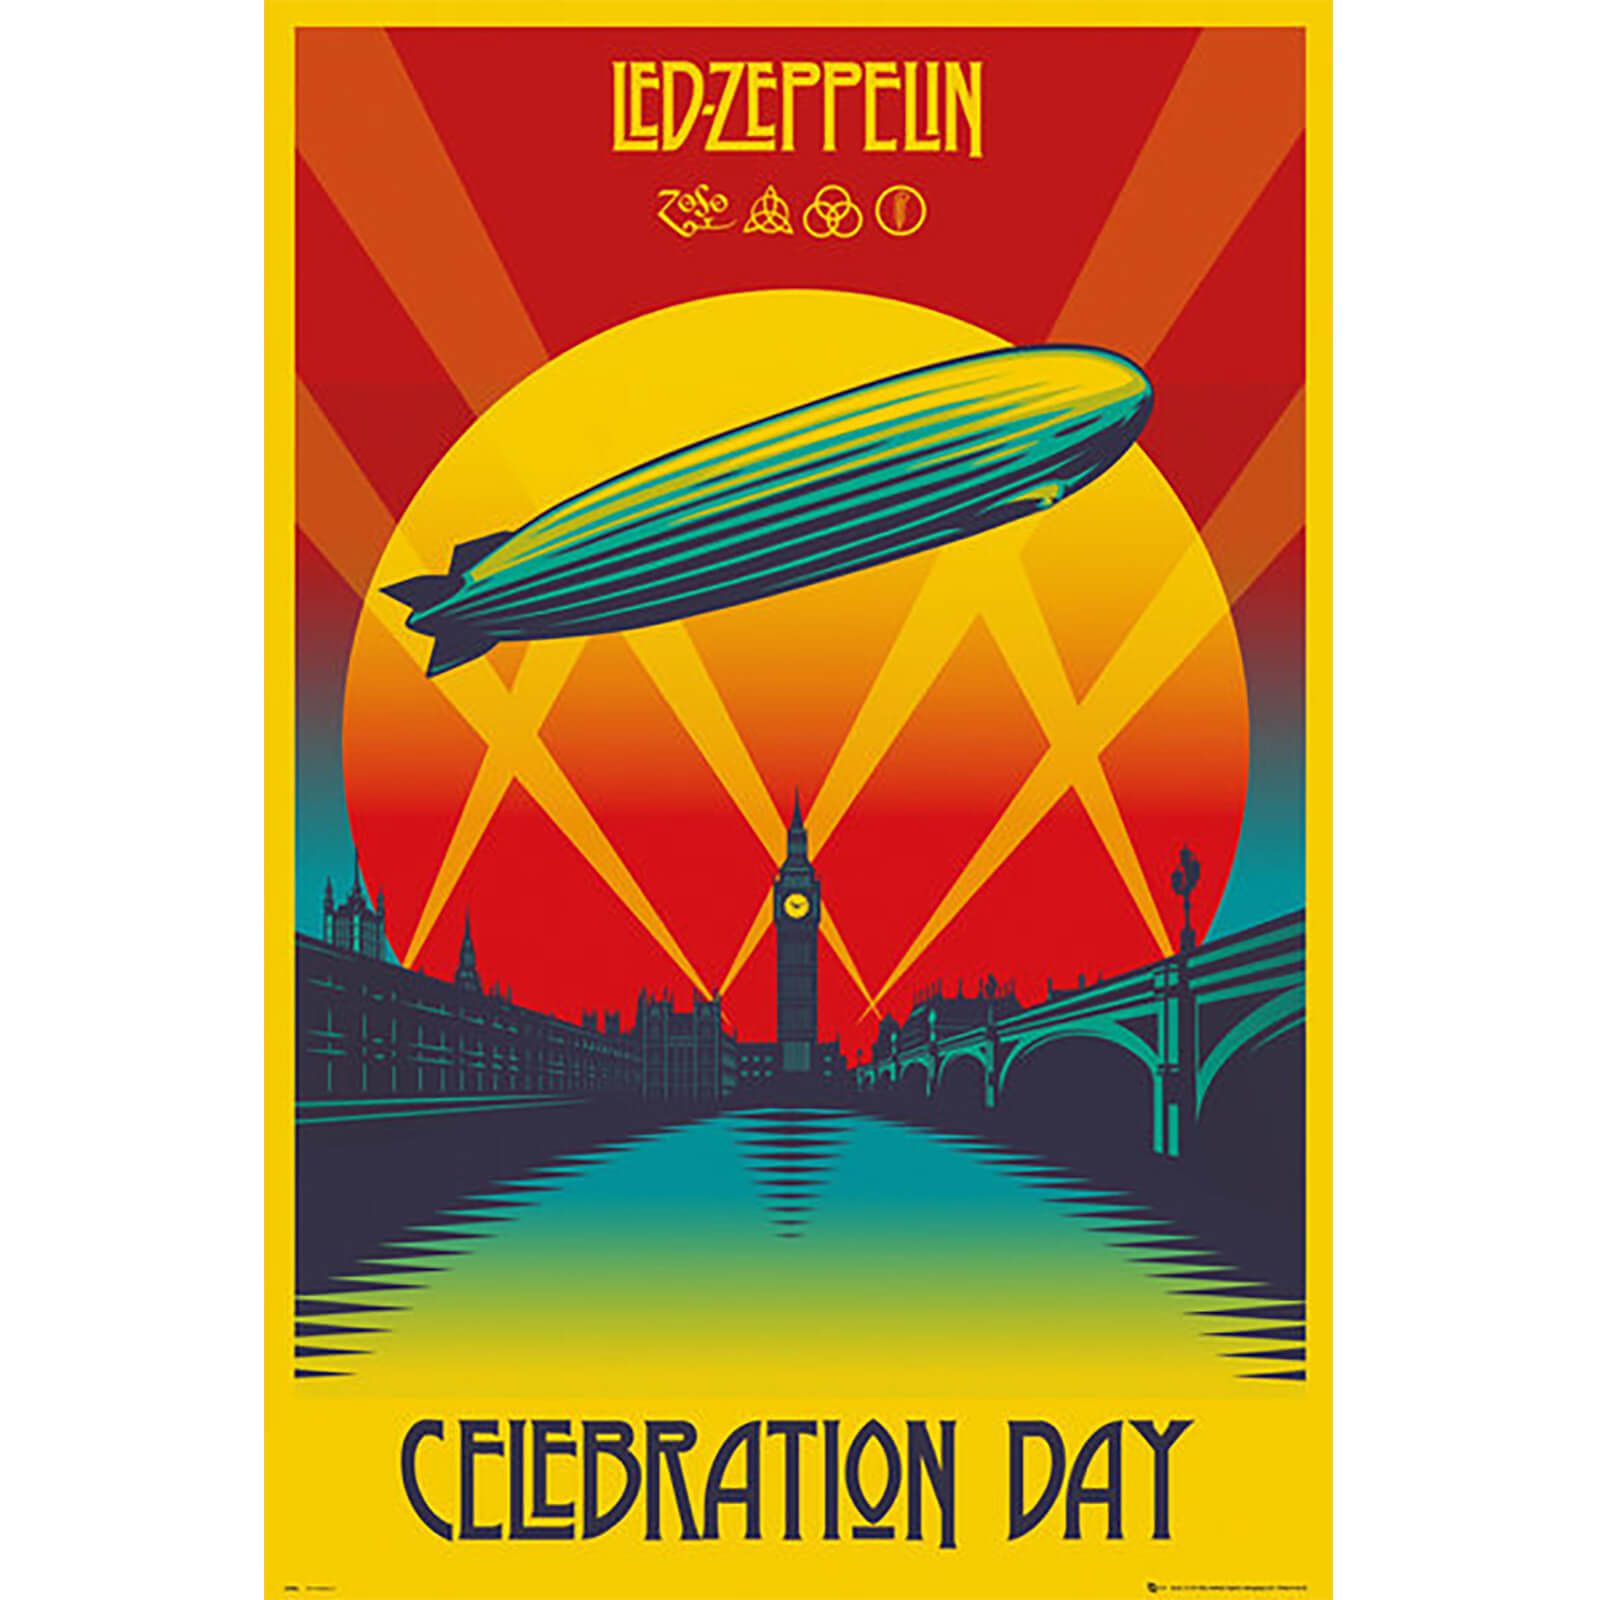 Led Zeppelin Celebration Day - 61 x 91.5cm Maxi Poster